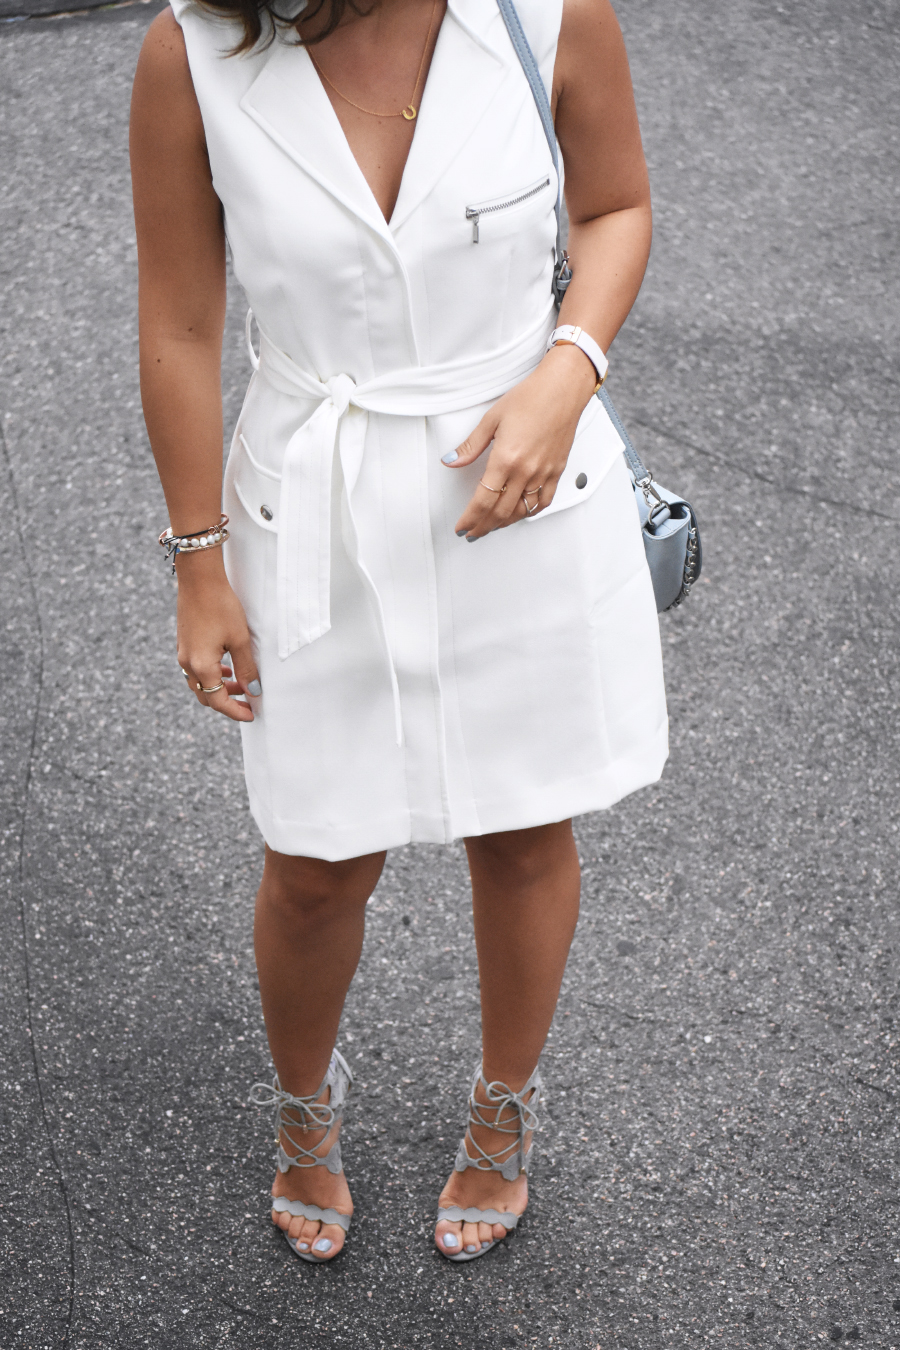 BAR III white shift dress with zippers